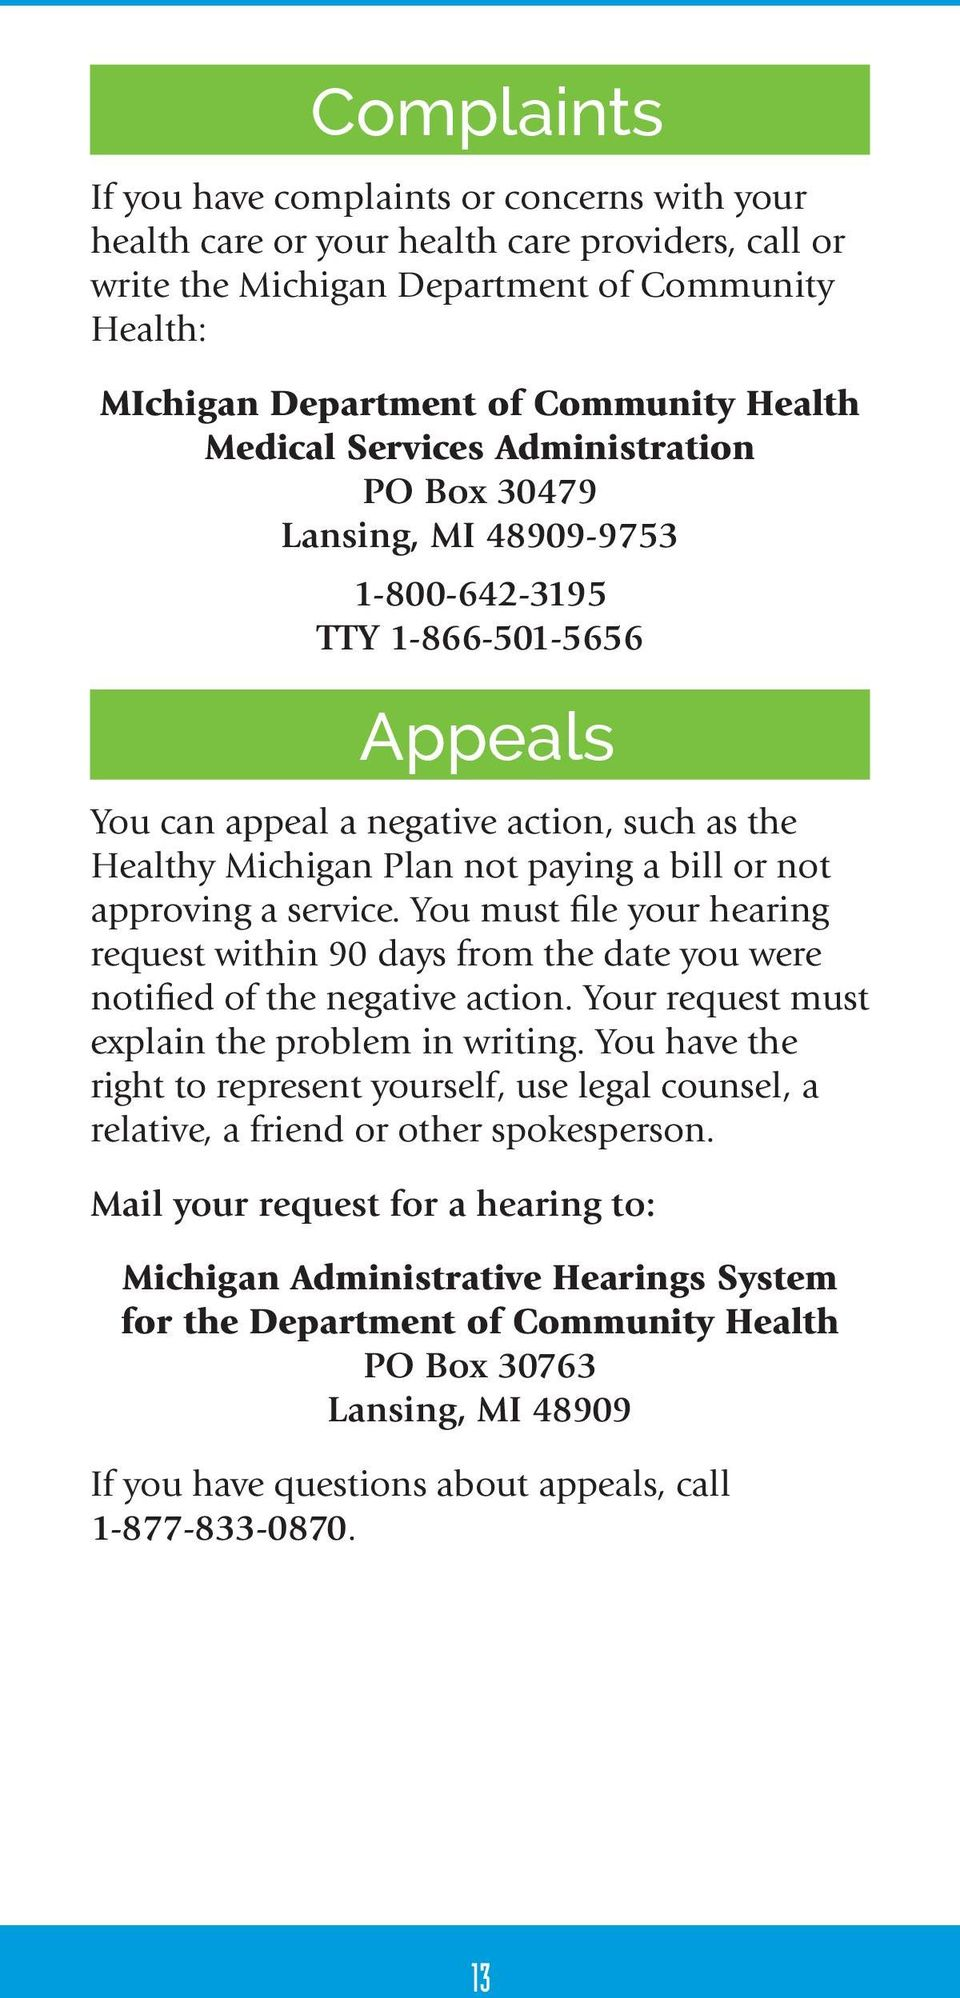 not approving a service. You must file your hearing request within 90 days from the date you were notified of the negative action. Your request must explain the problem in writing.